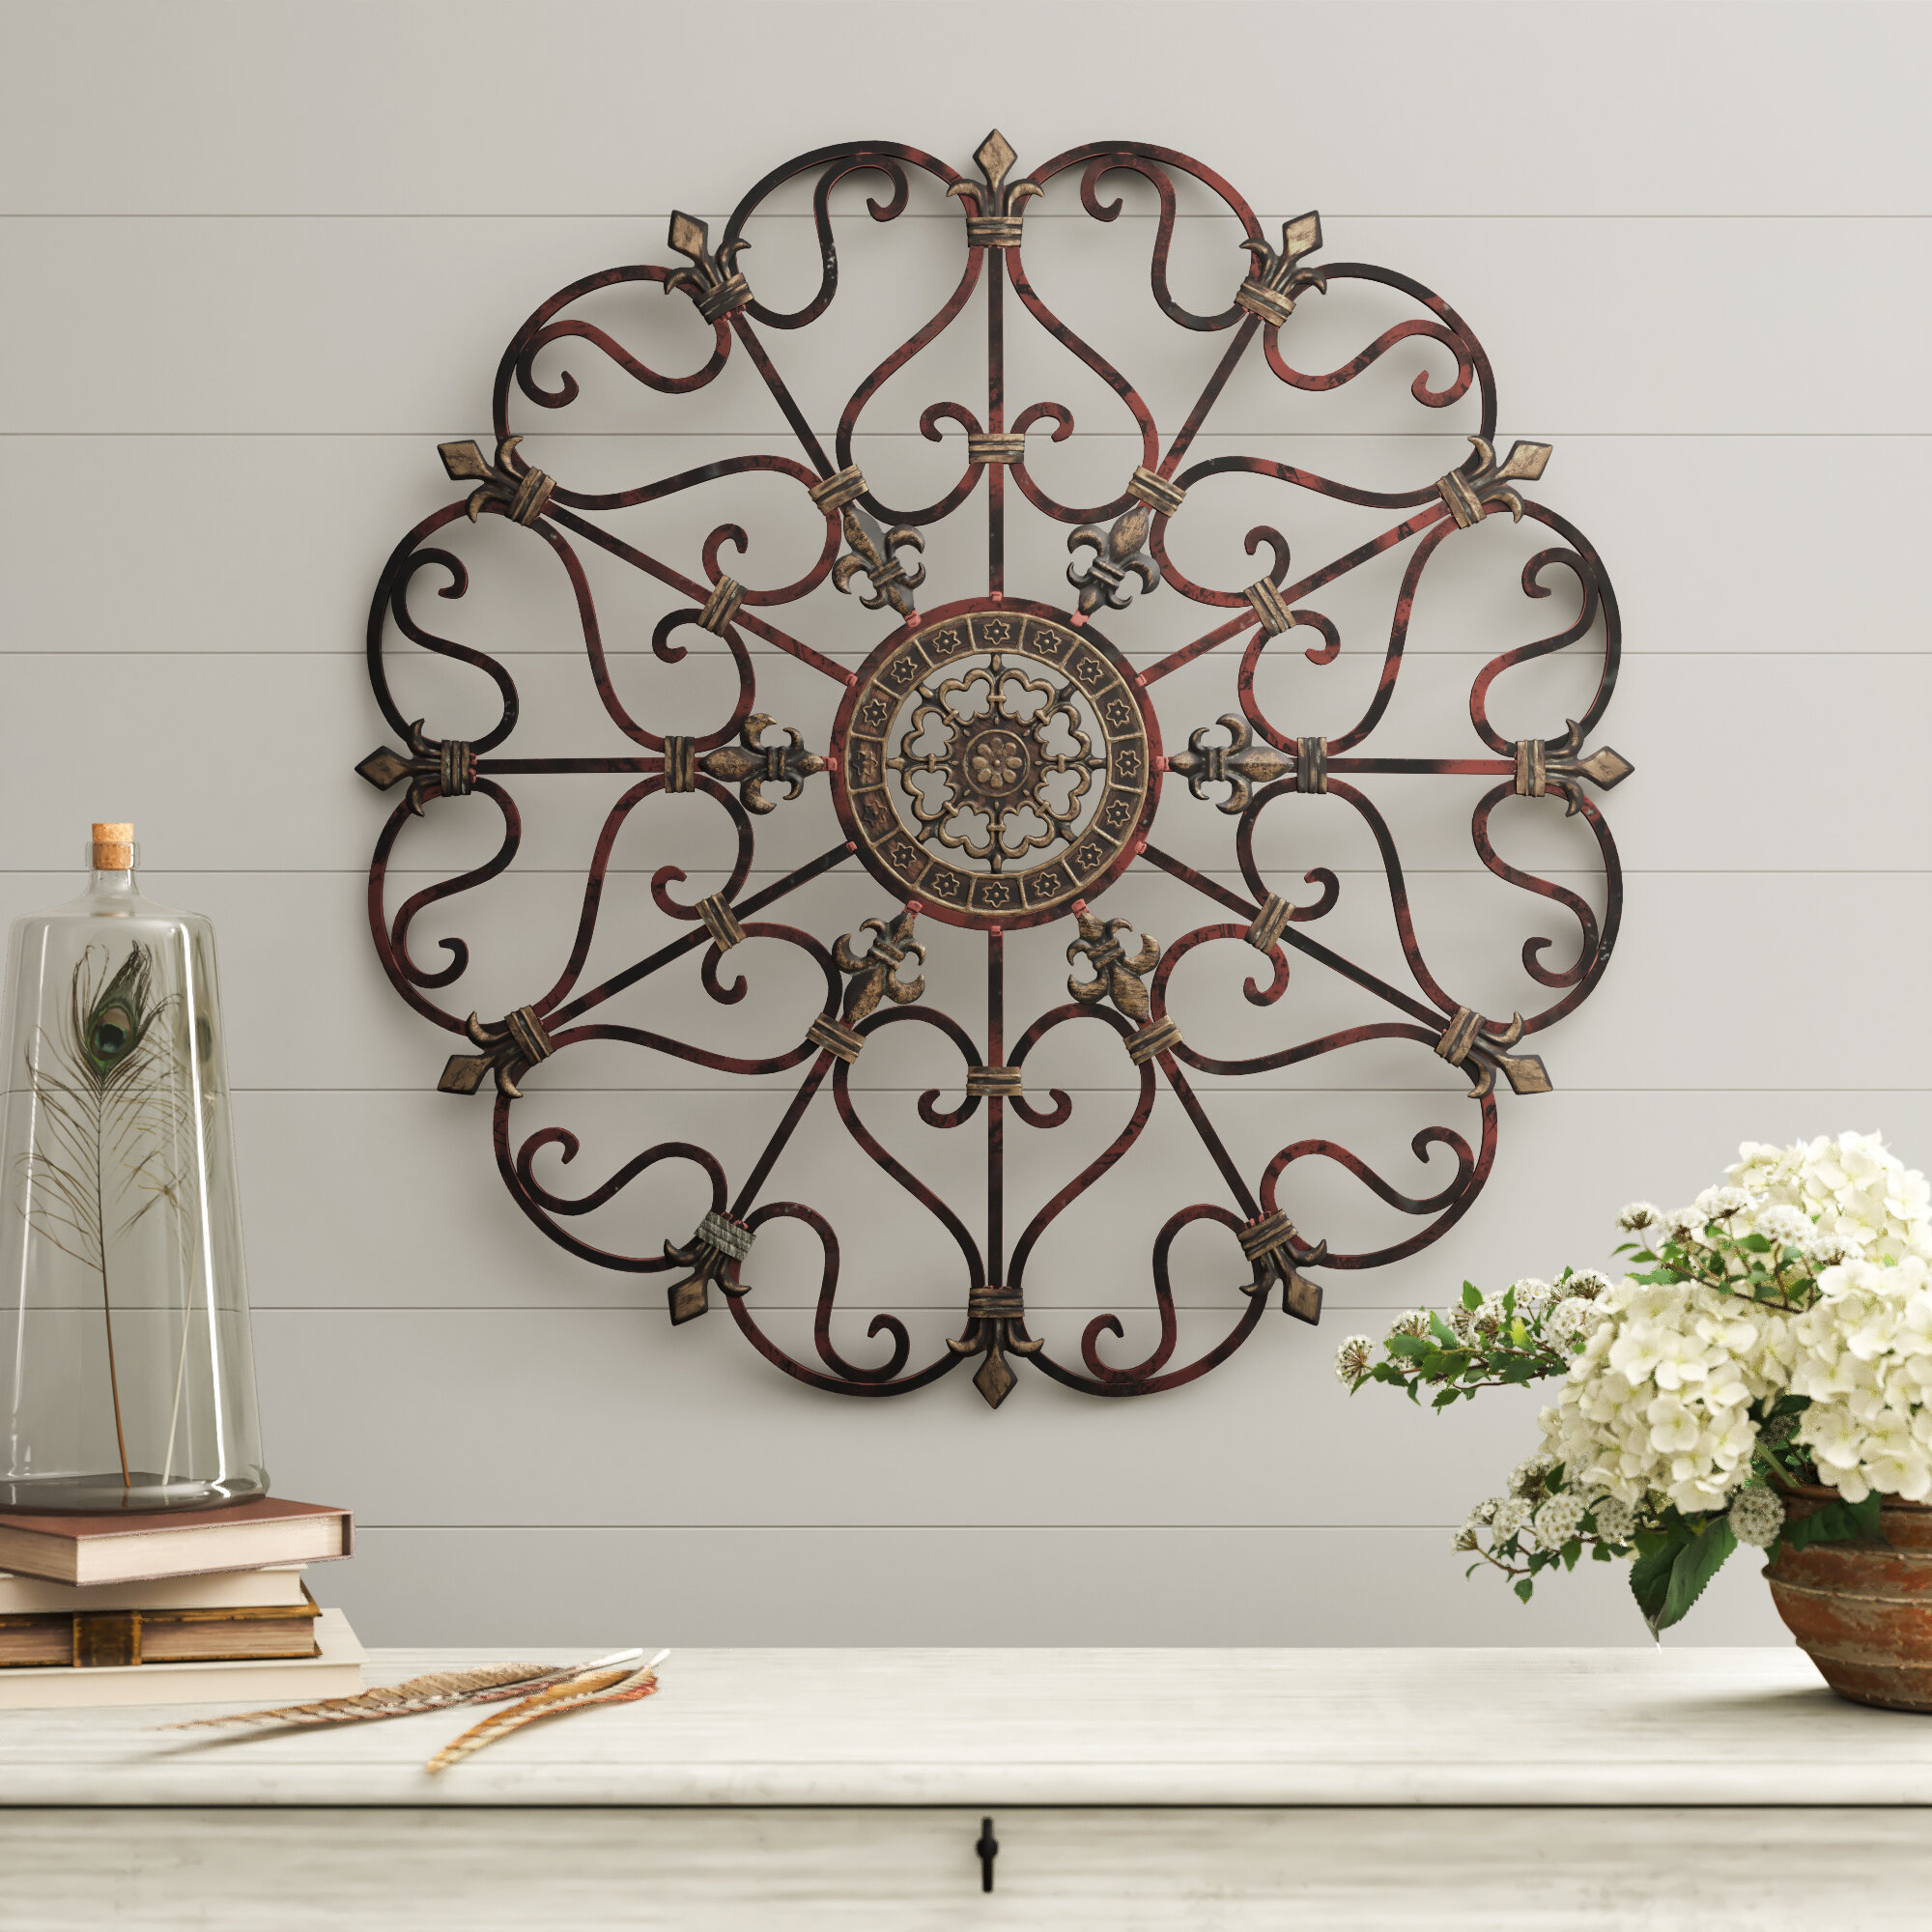 Farmhouse & Rustic Wall Decor | Birch Lane in 3 Piece Ceramic Flowers Wall Decor Sets (Image 19 of 30)